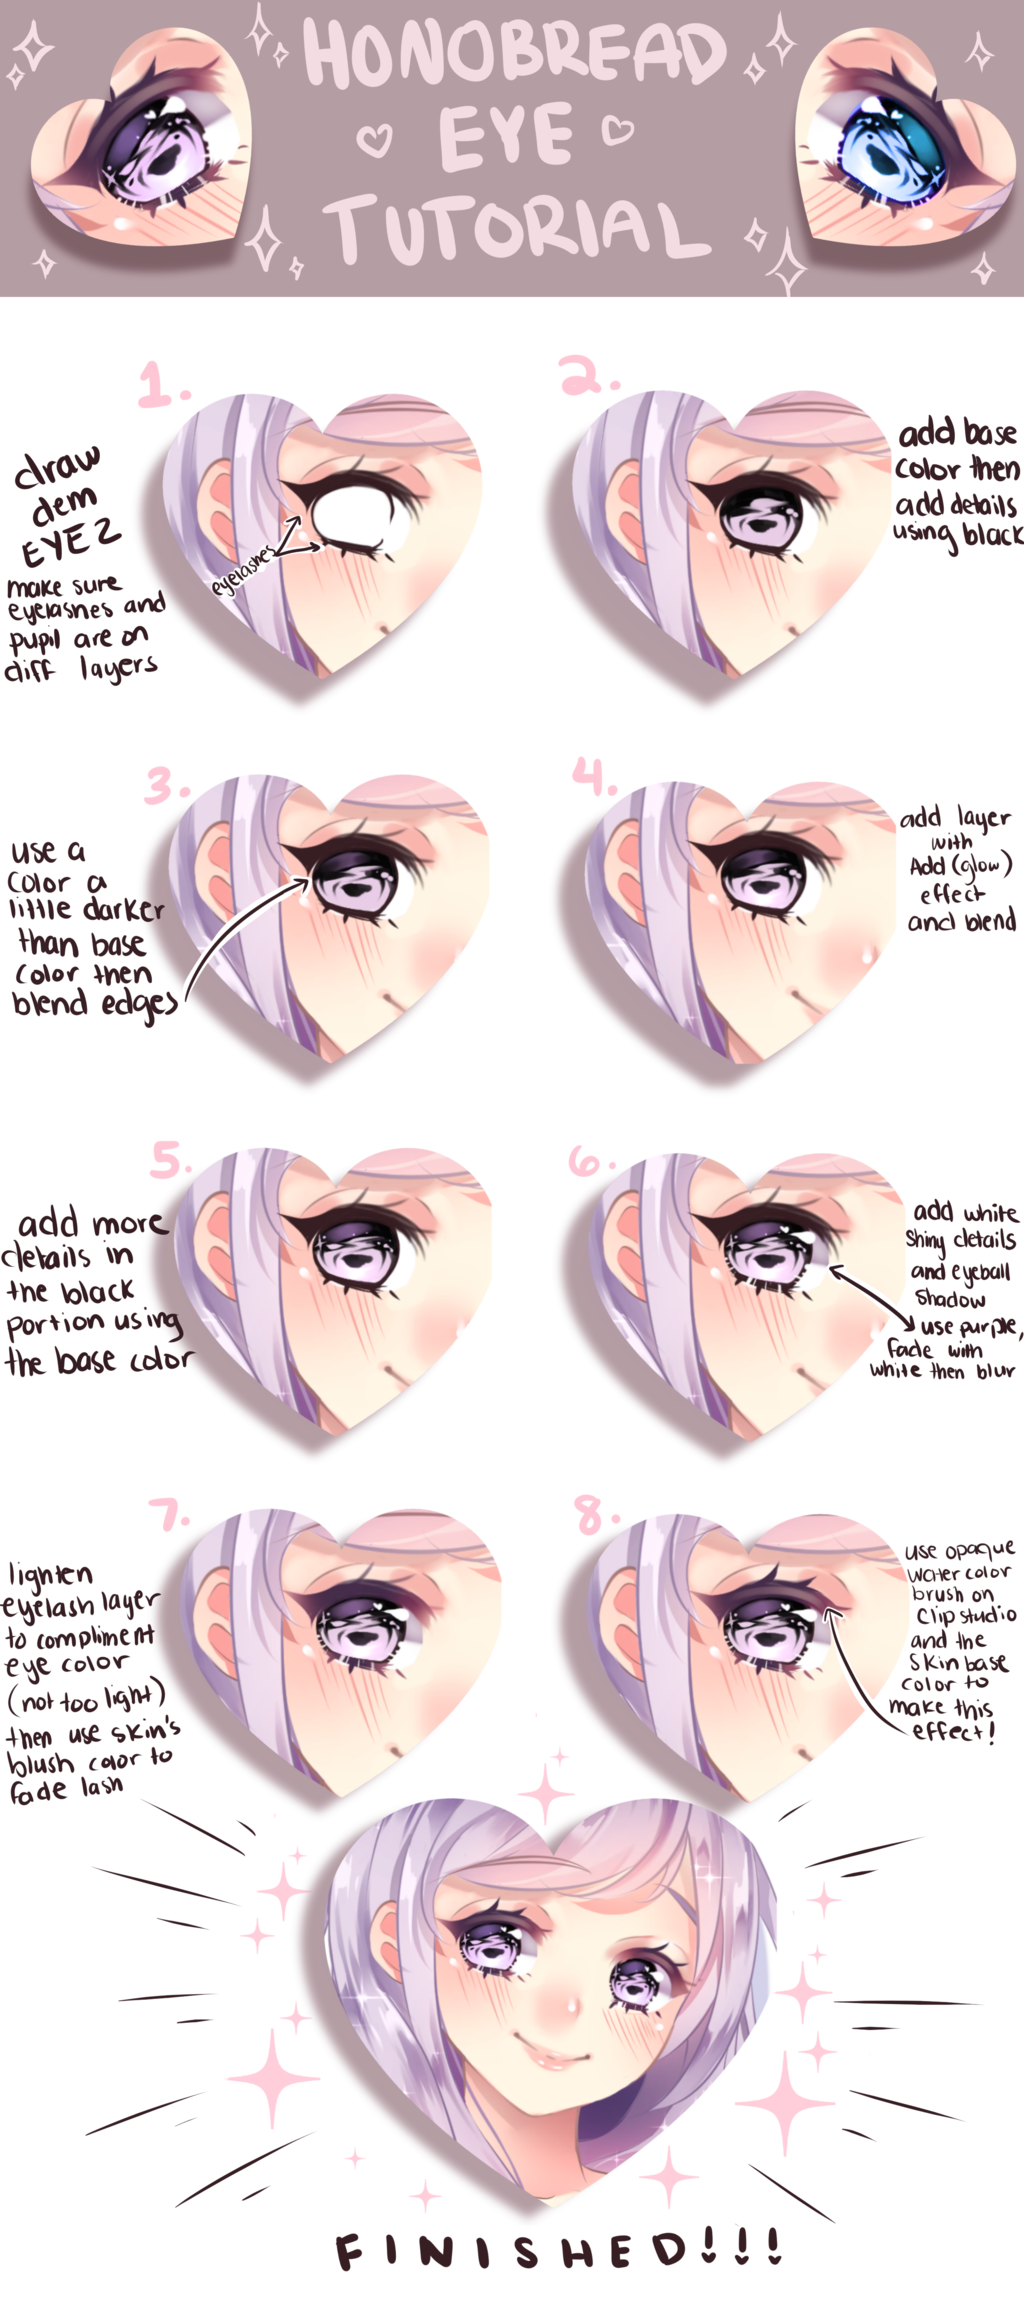 Shiny Eye Coloring Tutorial By Honobread On Deviantart Shiny Eyes Coloring Tutorial Clip Studio Paint Tutorial